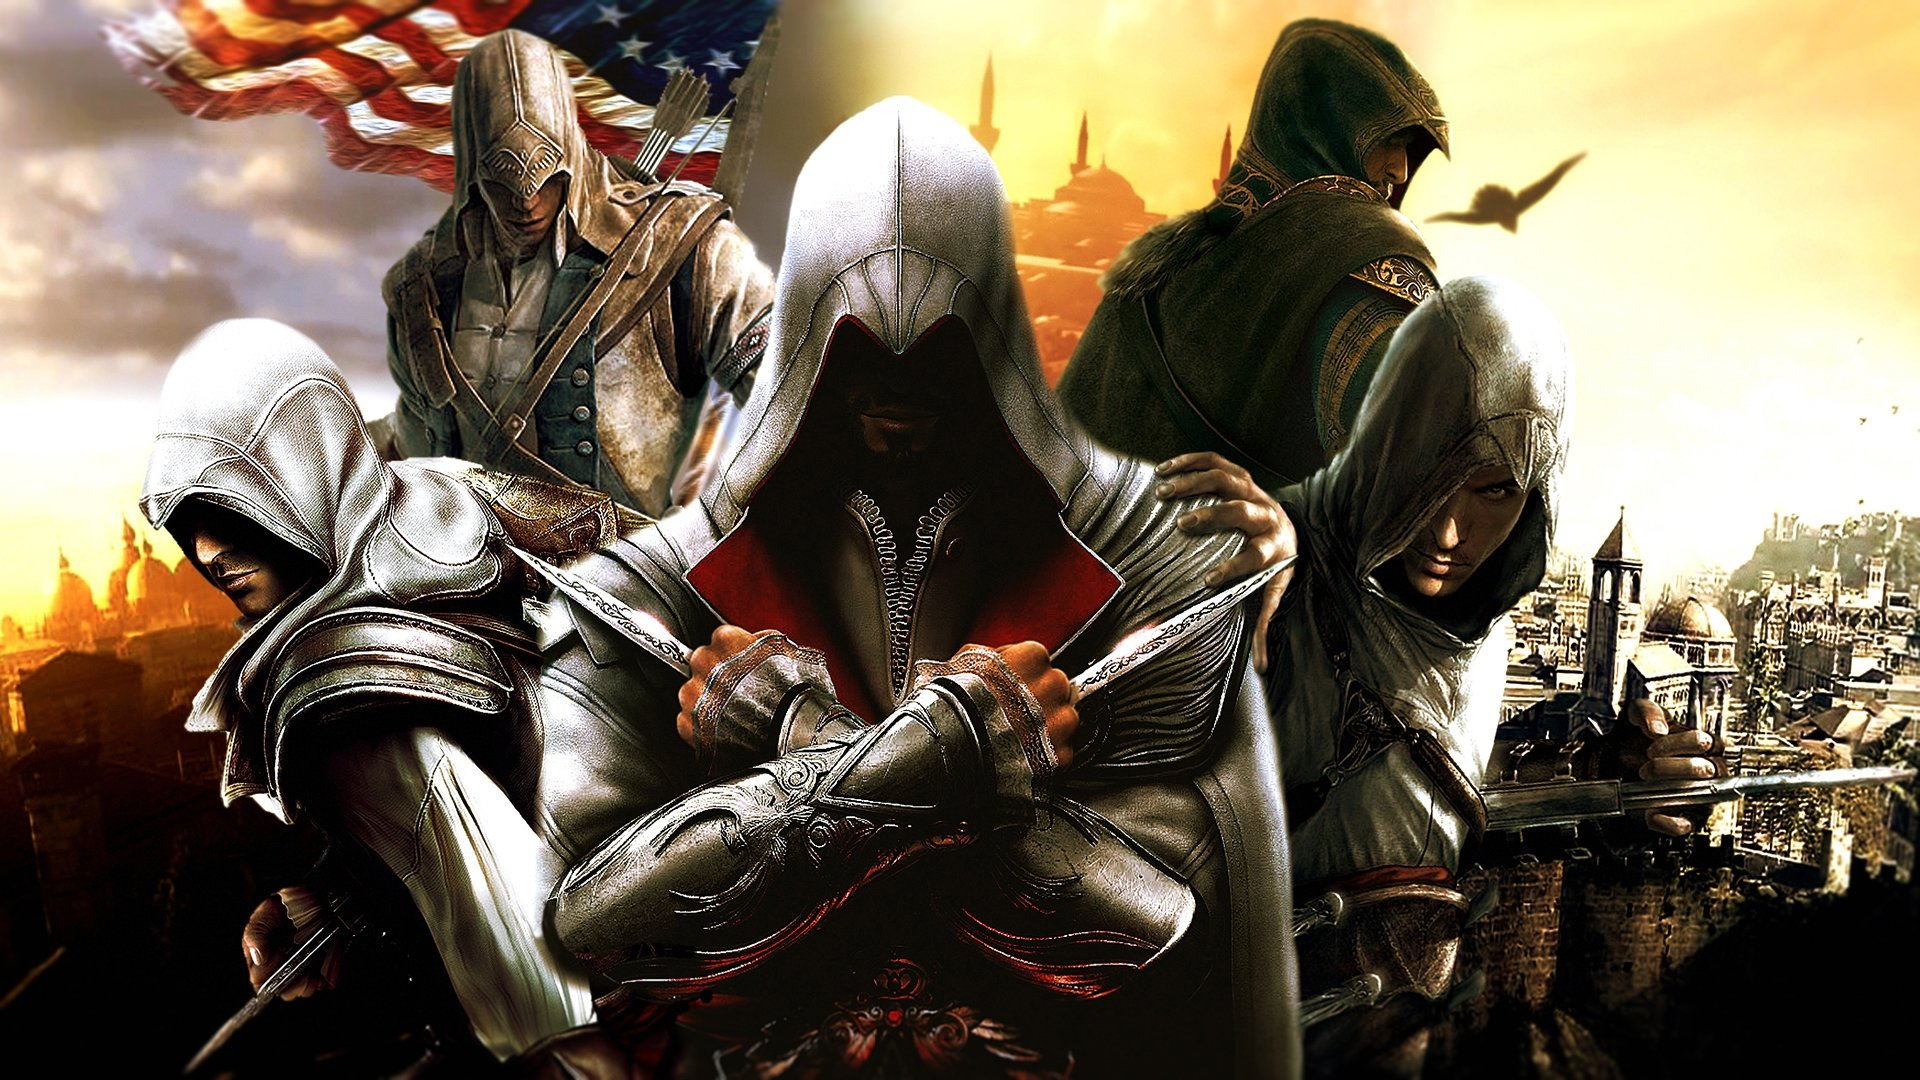 Free download Assassin's Creed background ID:188221 full hd for PC